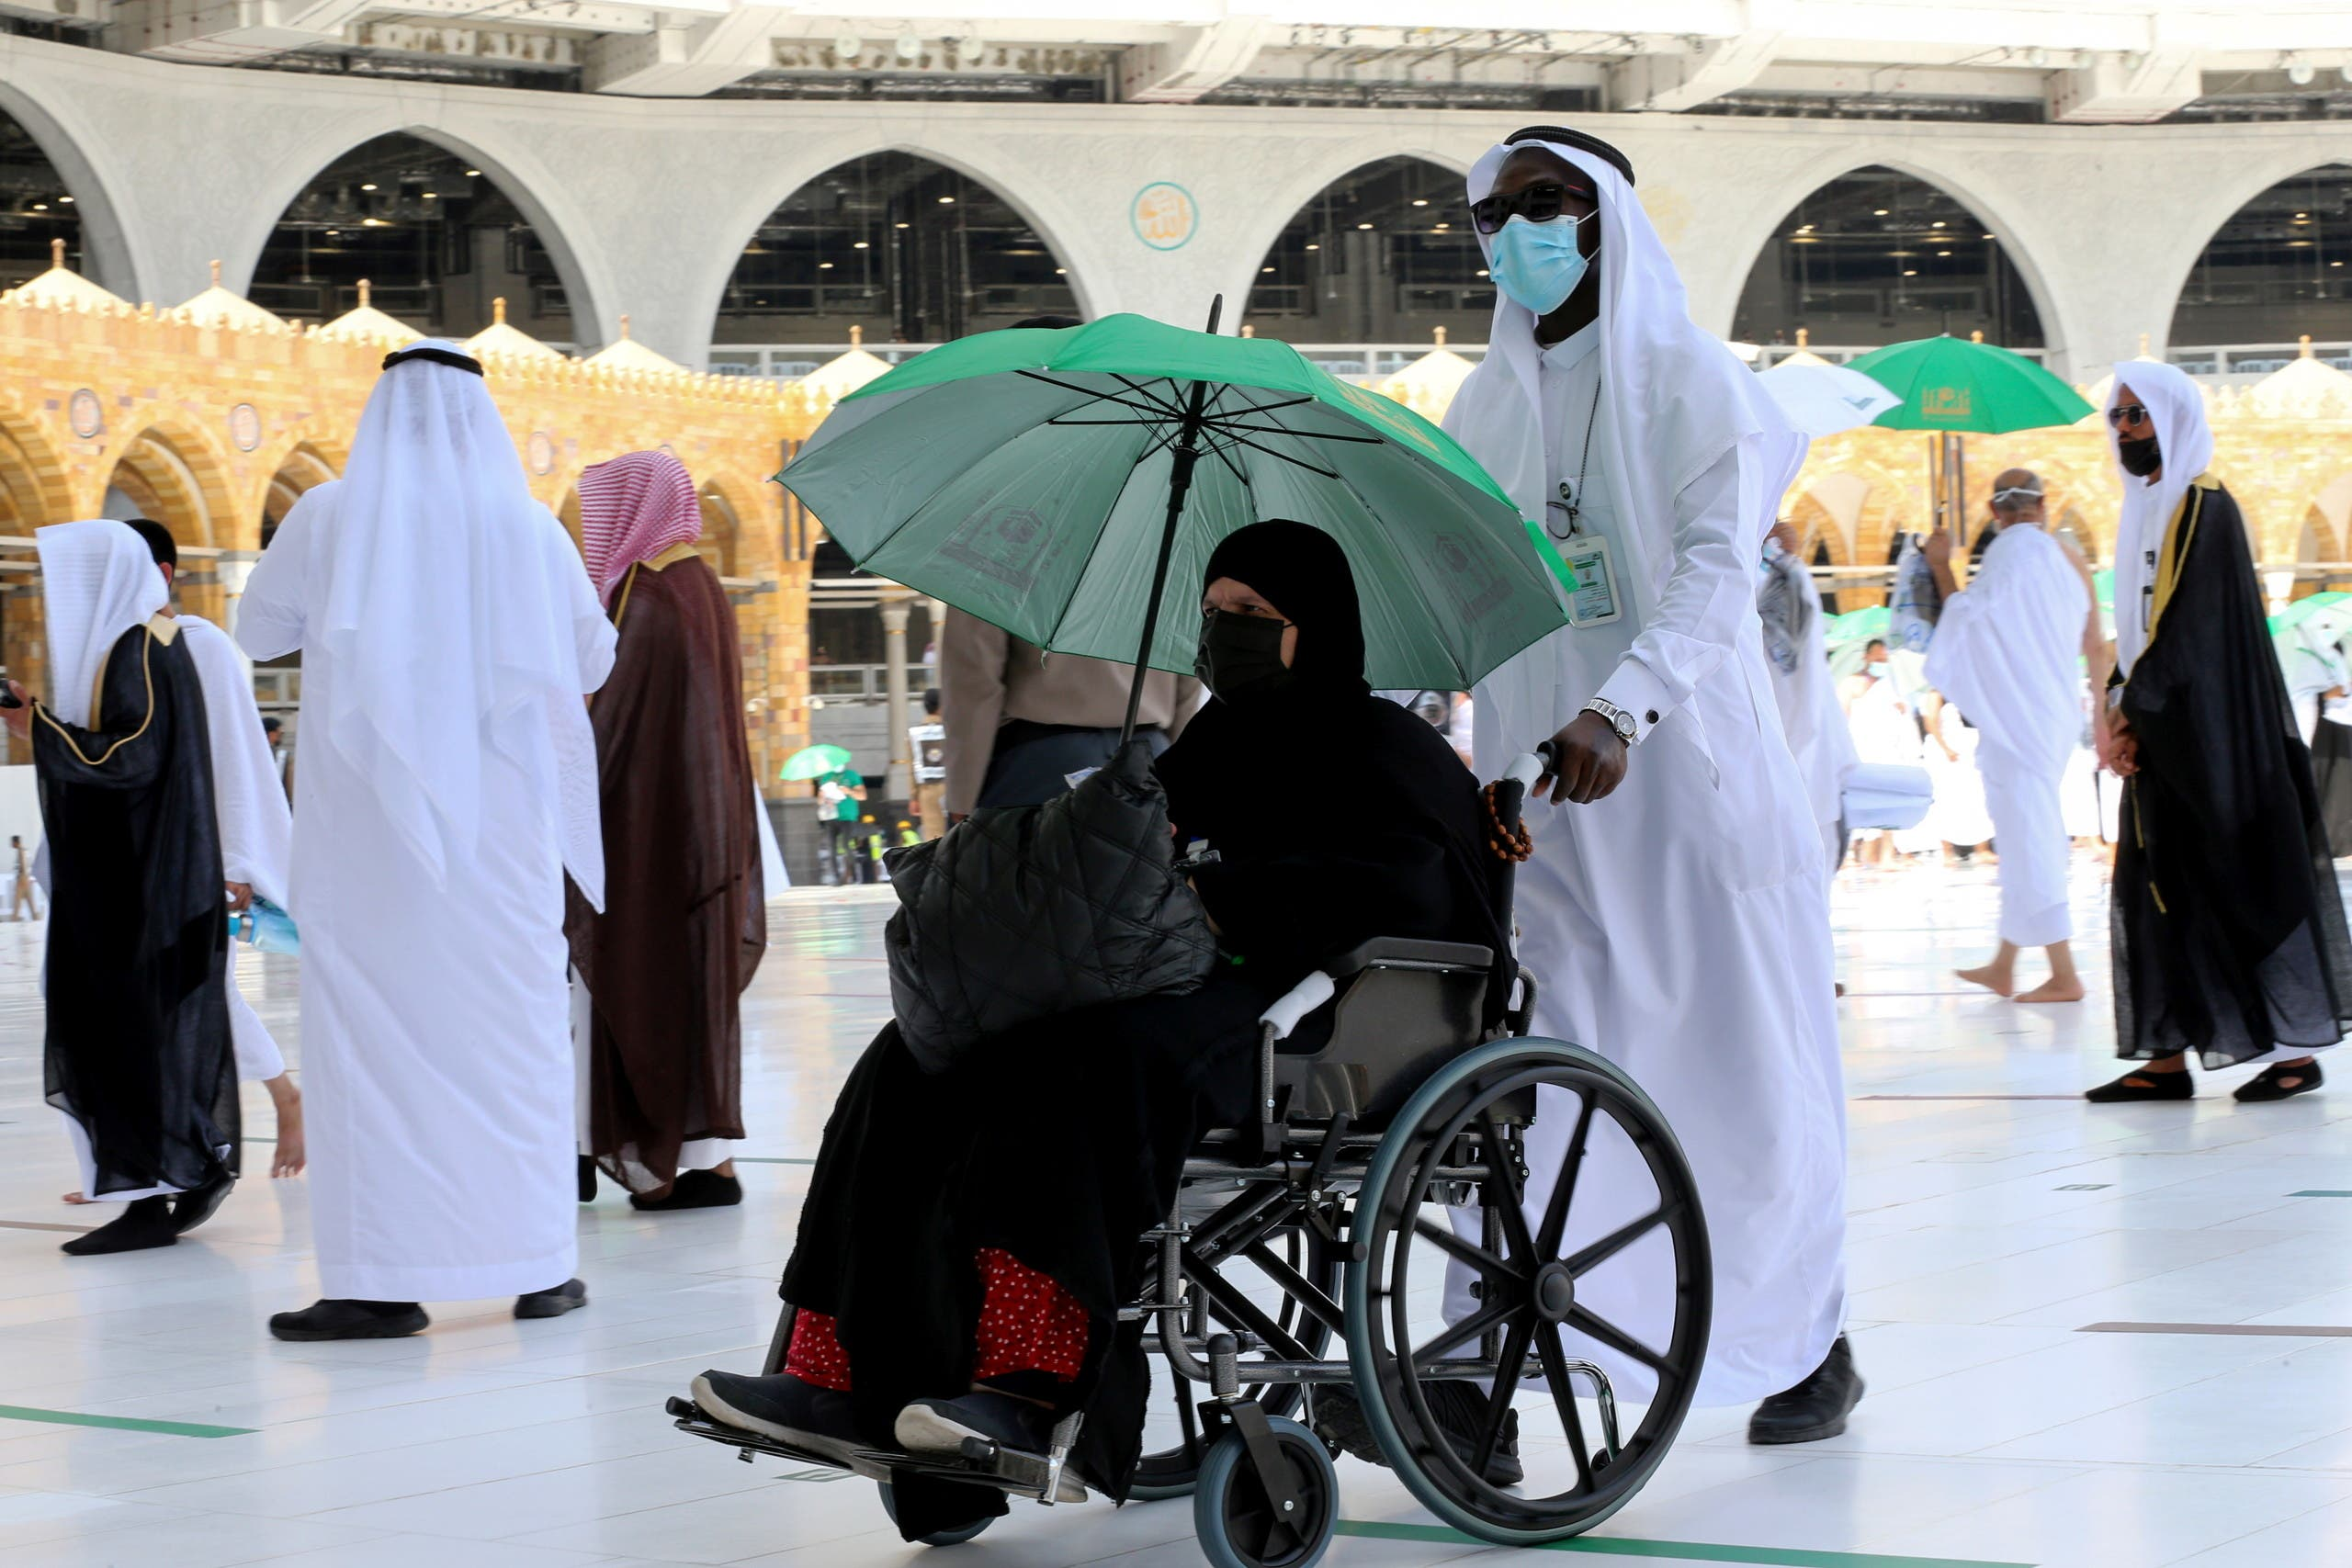 A man pushes a wheelchair for a Muslim pilgrim in the Grand Mosque in the holy city of Mecca, Saudi Arabia July 17, 2021. (Reuters)